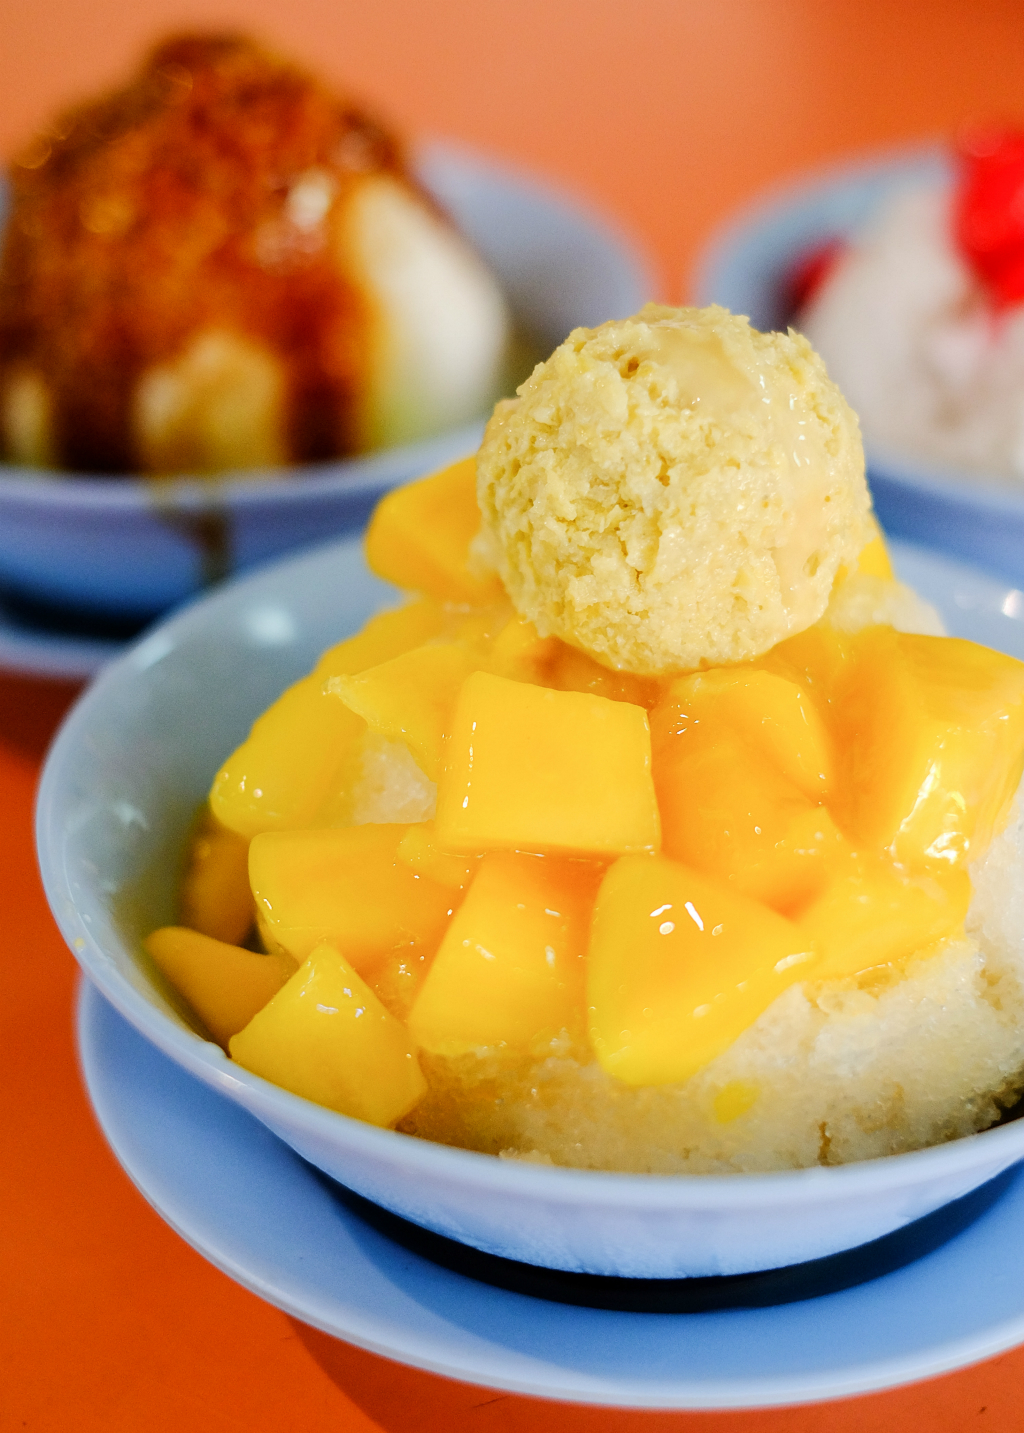 Jin Jin Hot/Cold Dessert: Durian/Mango Ice